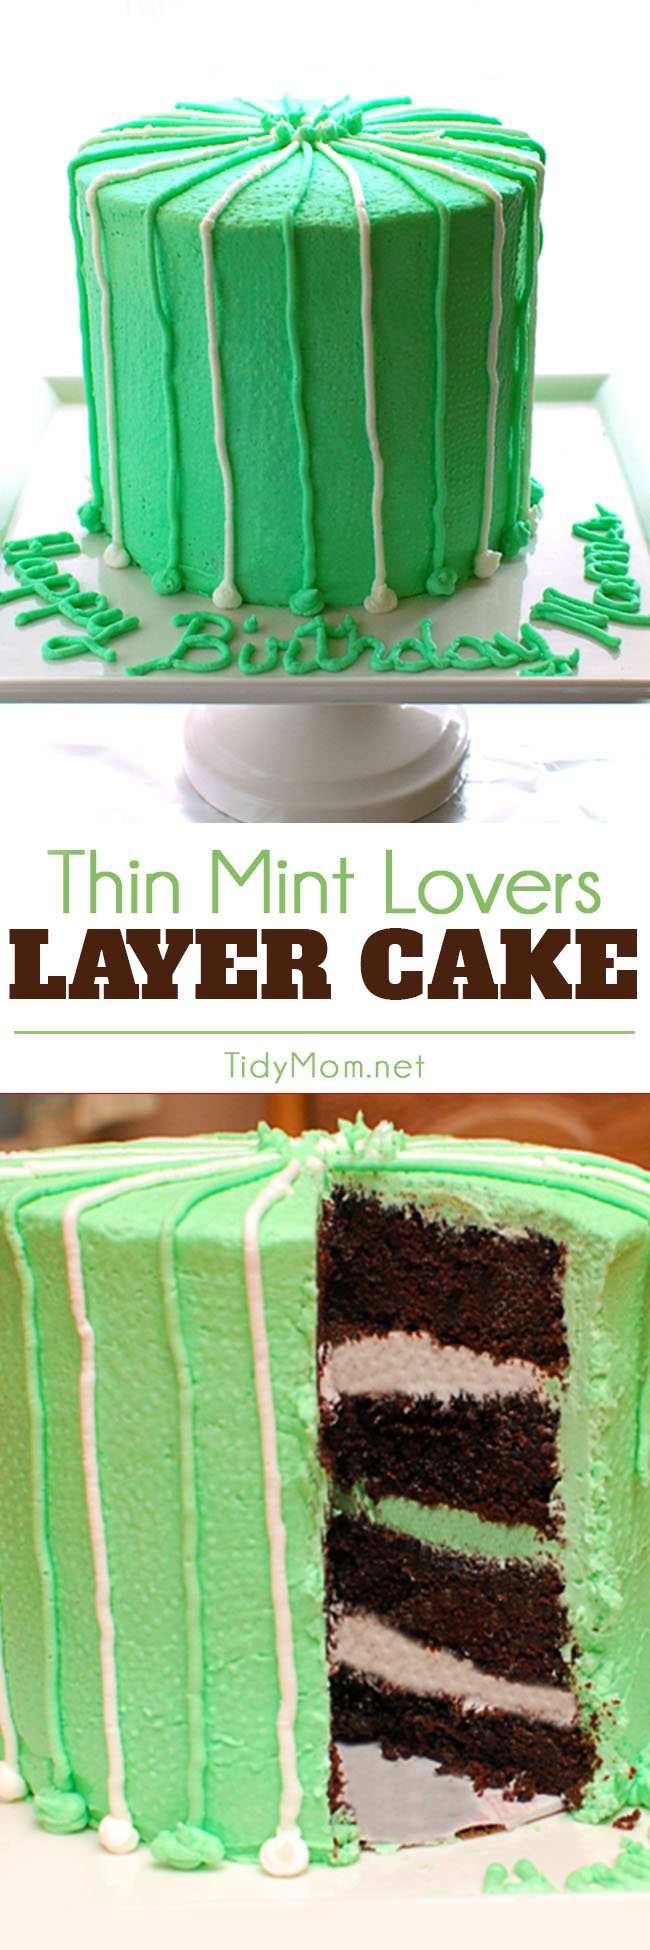 The perfect blend of moist chocolate and peppermint cake with vanilla buttercream in this Thin Mint Cake will have them coming back for more. It's an easy and delicious dessert perfect for the chocolate mint lovers! Print the full recipe, and found out what surprise ingredient makes this cake SO moist and delicious at TidyMom.net #cake #chocolate #mint #chocolatecake #birthdaycake #thinmint